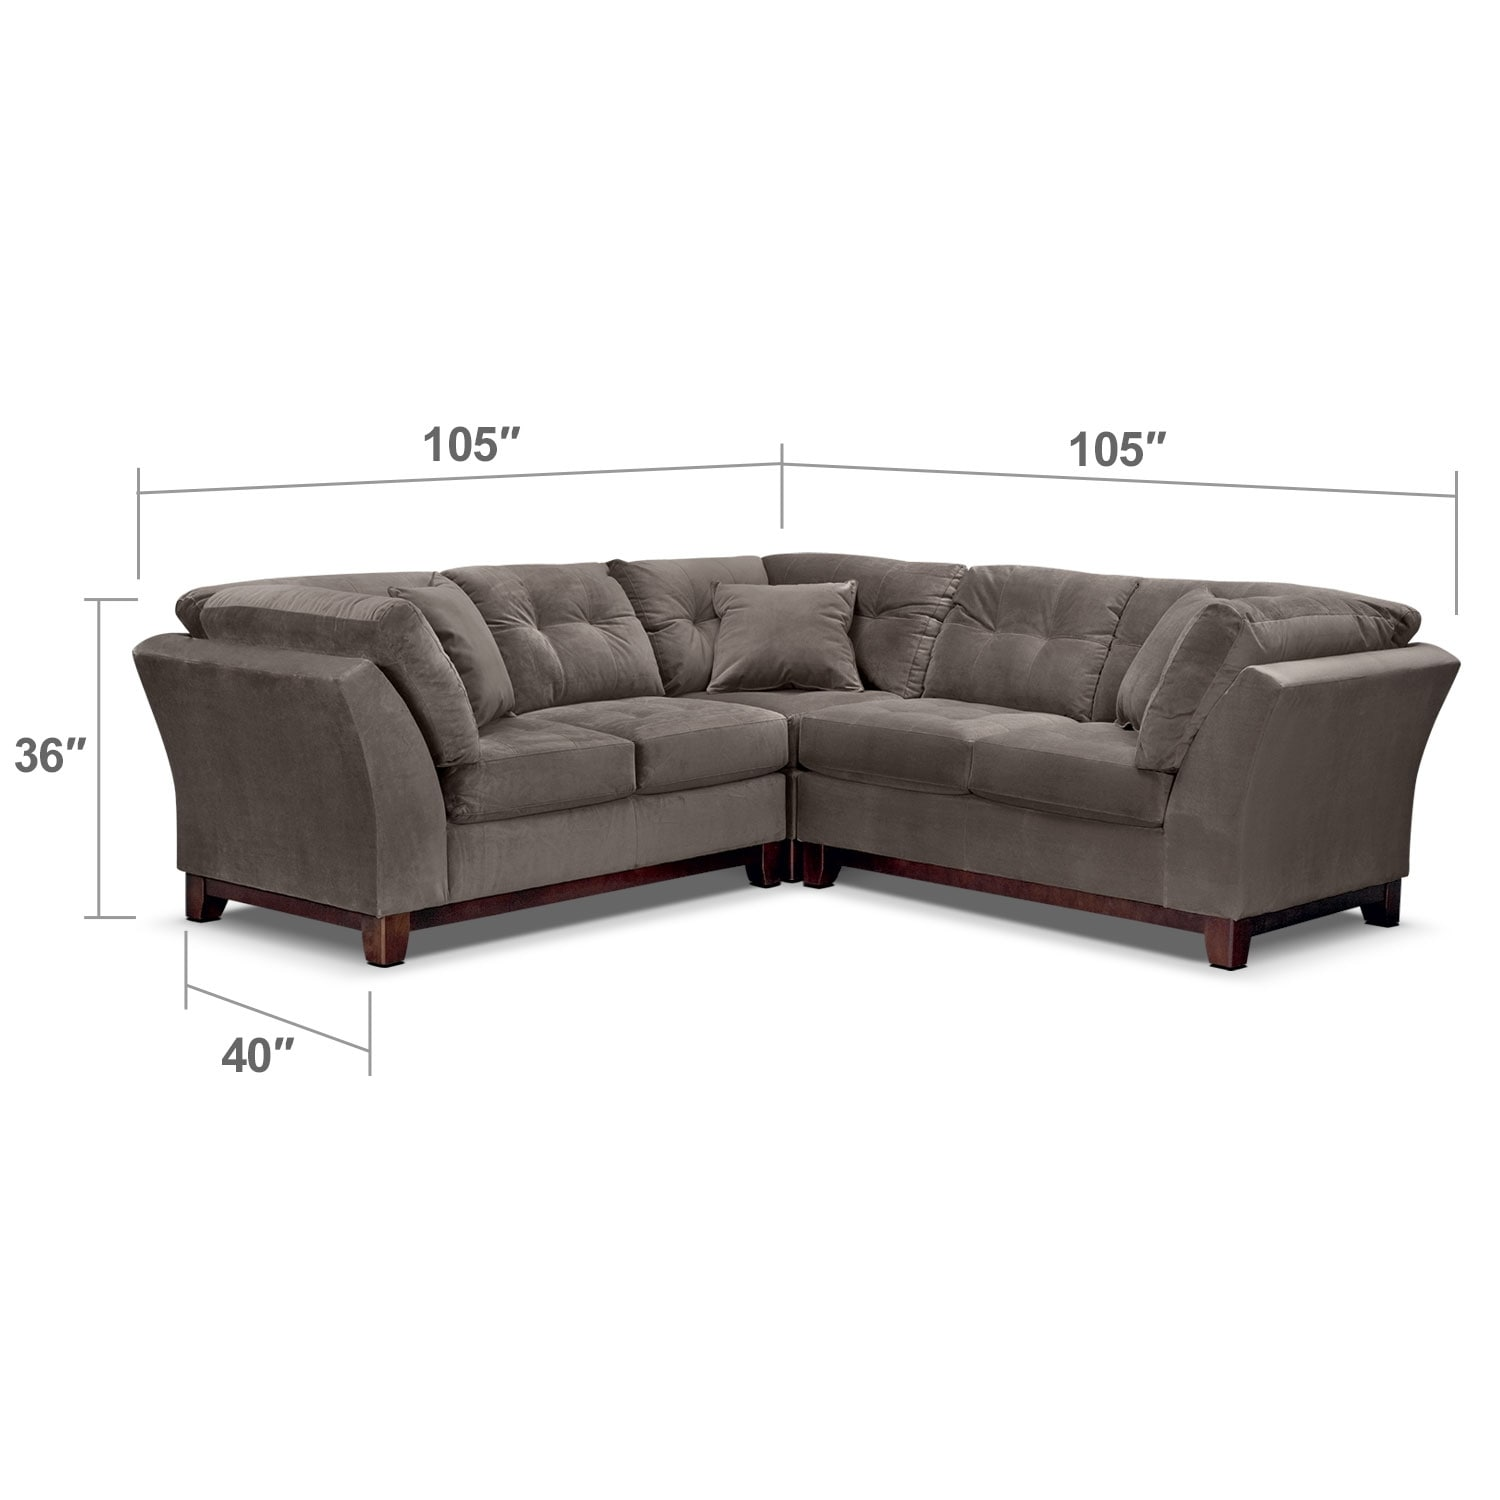 Living Room Furniture - Solace 3-Piece Sectional - Gray